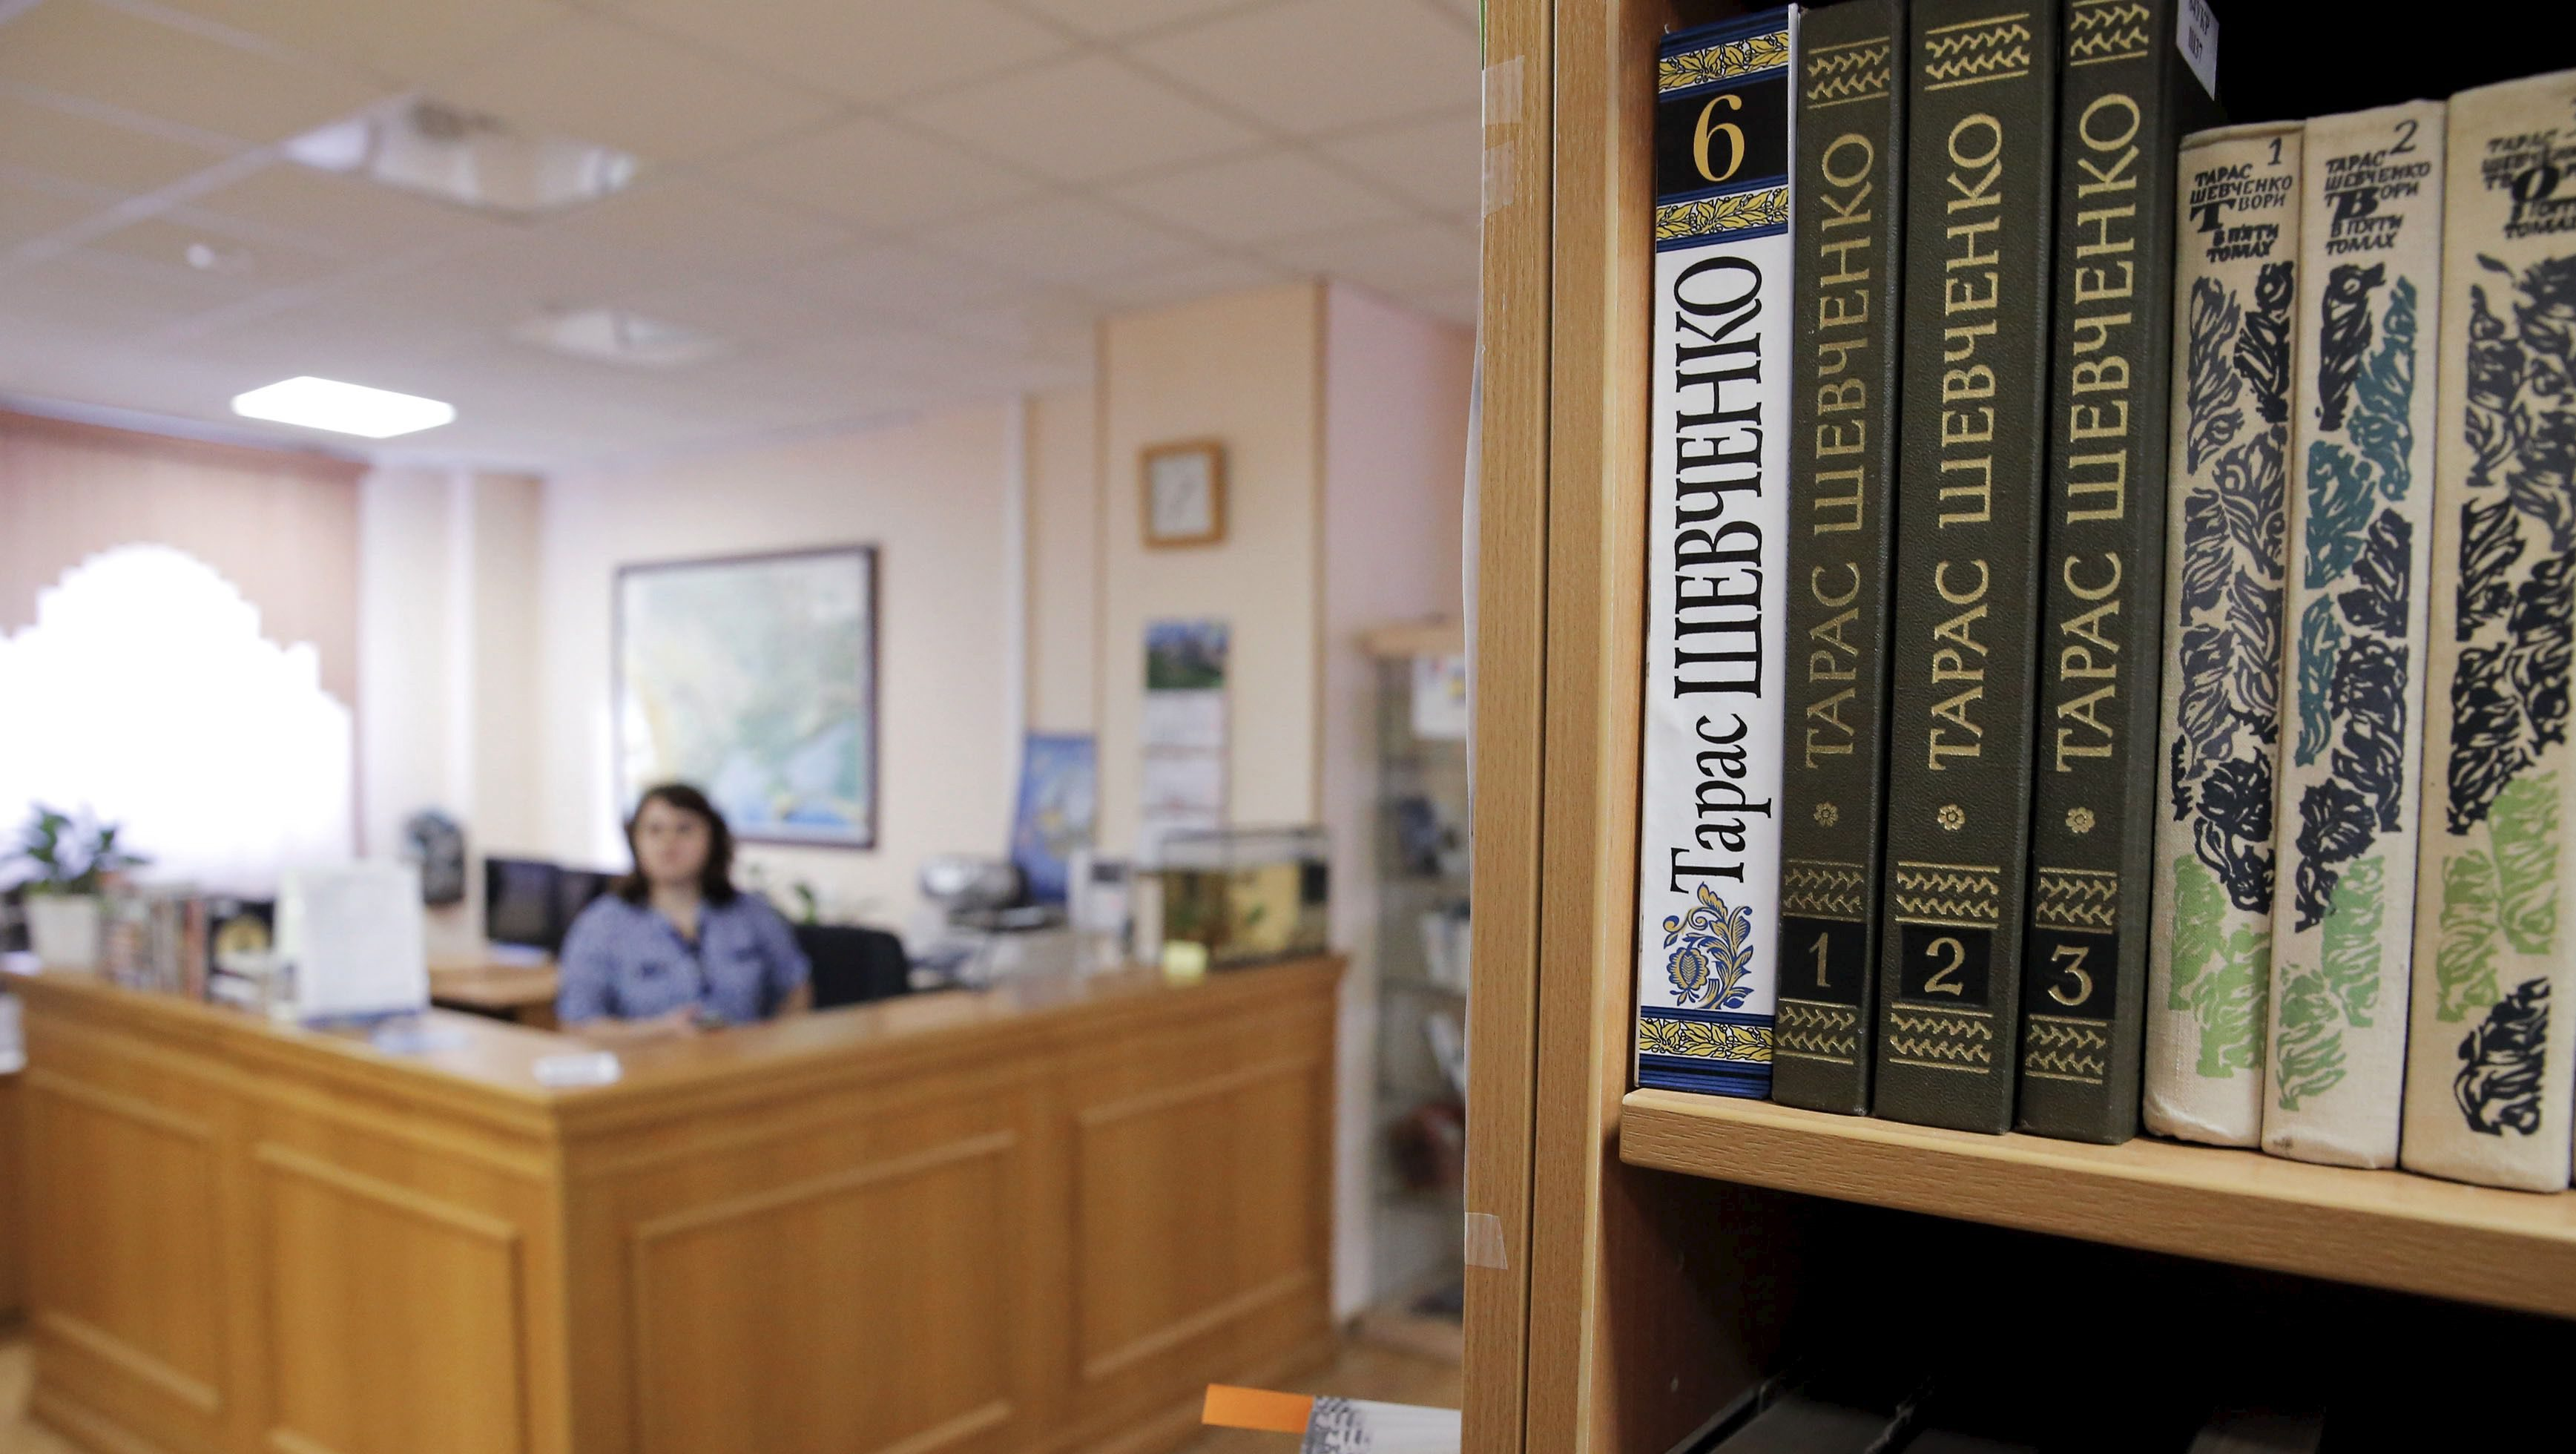 ibrary of Ukrainian Literature in Moscow, Russia